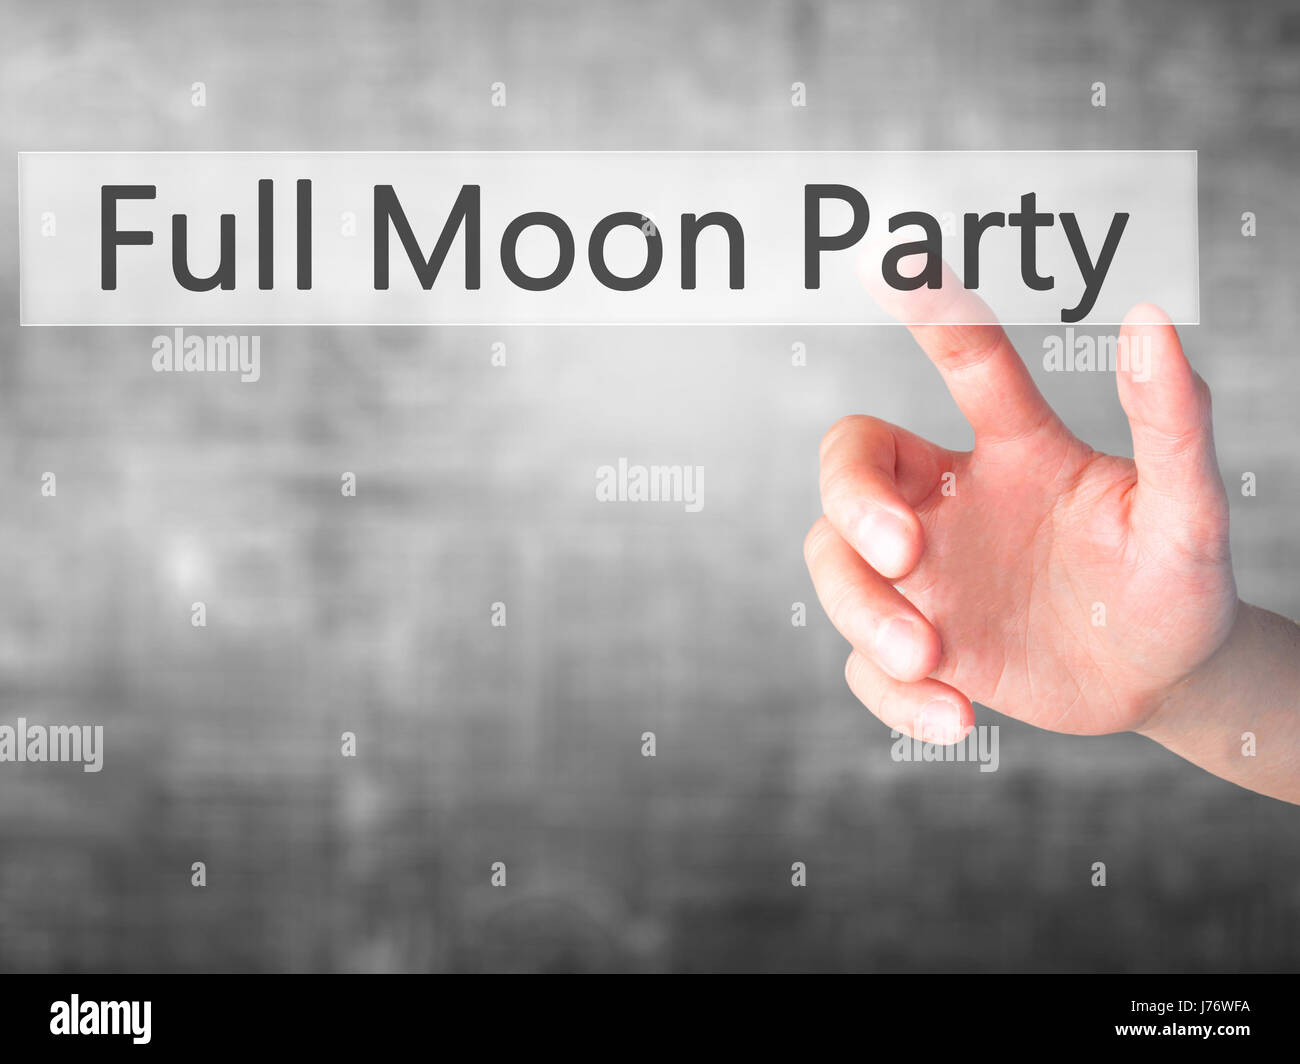 Full Moon Party - Hand pressing a button on blurred background concept . Business, technology, internet concept. - Stock Image